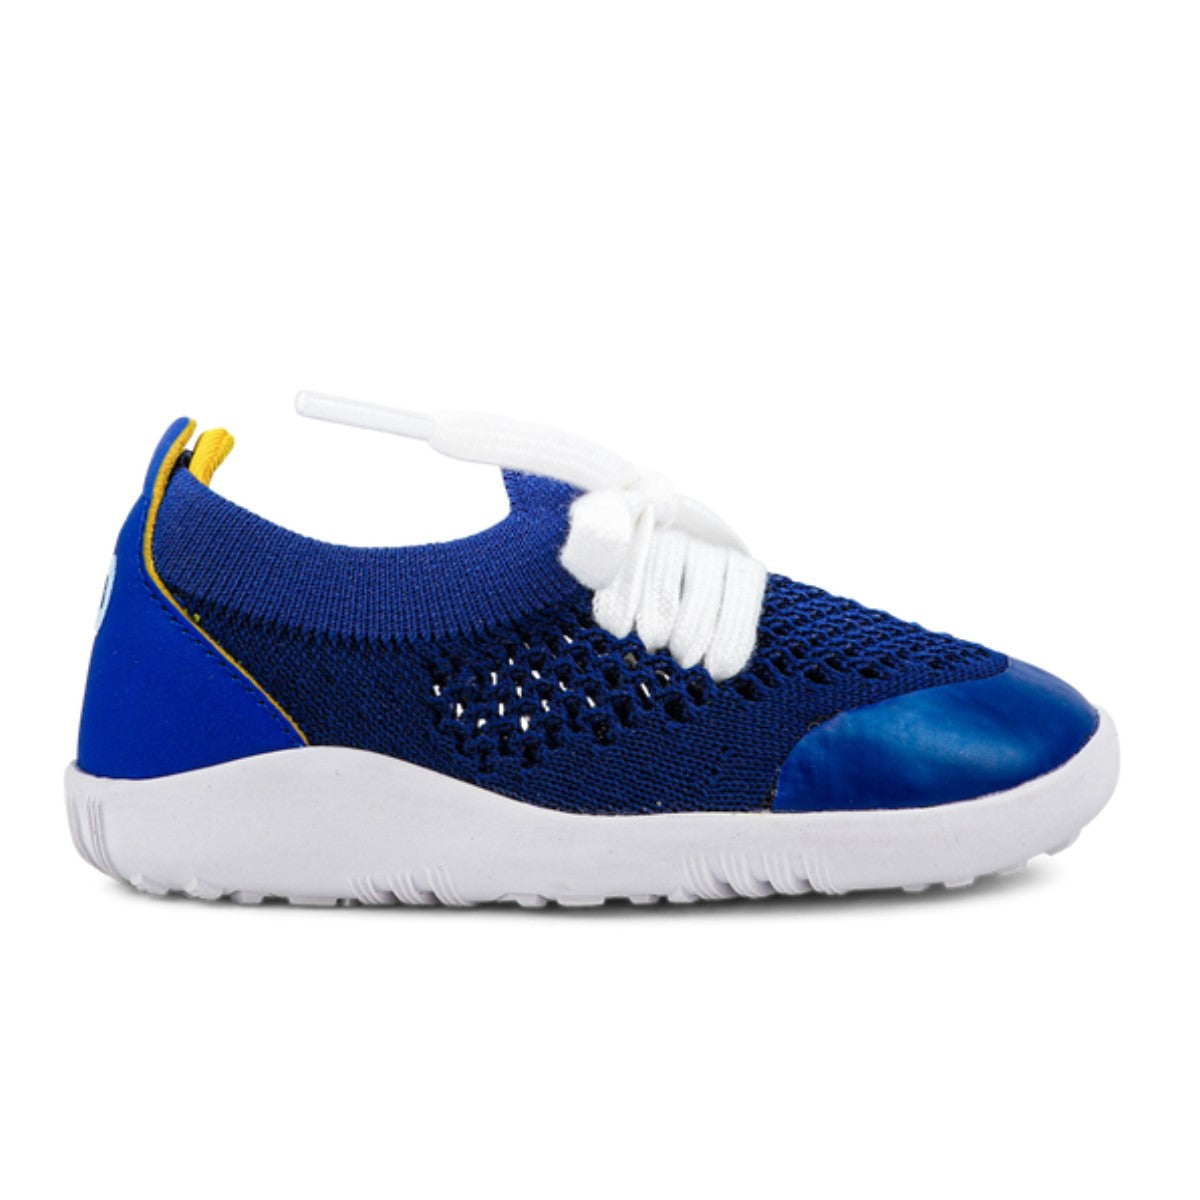 Step Up Play Knit blueberry/giallo | La sneaker ultraflessibile e traspirante